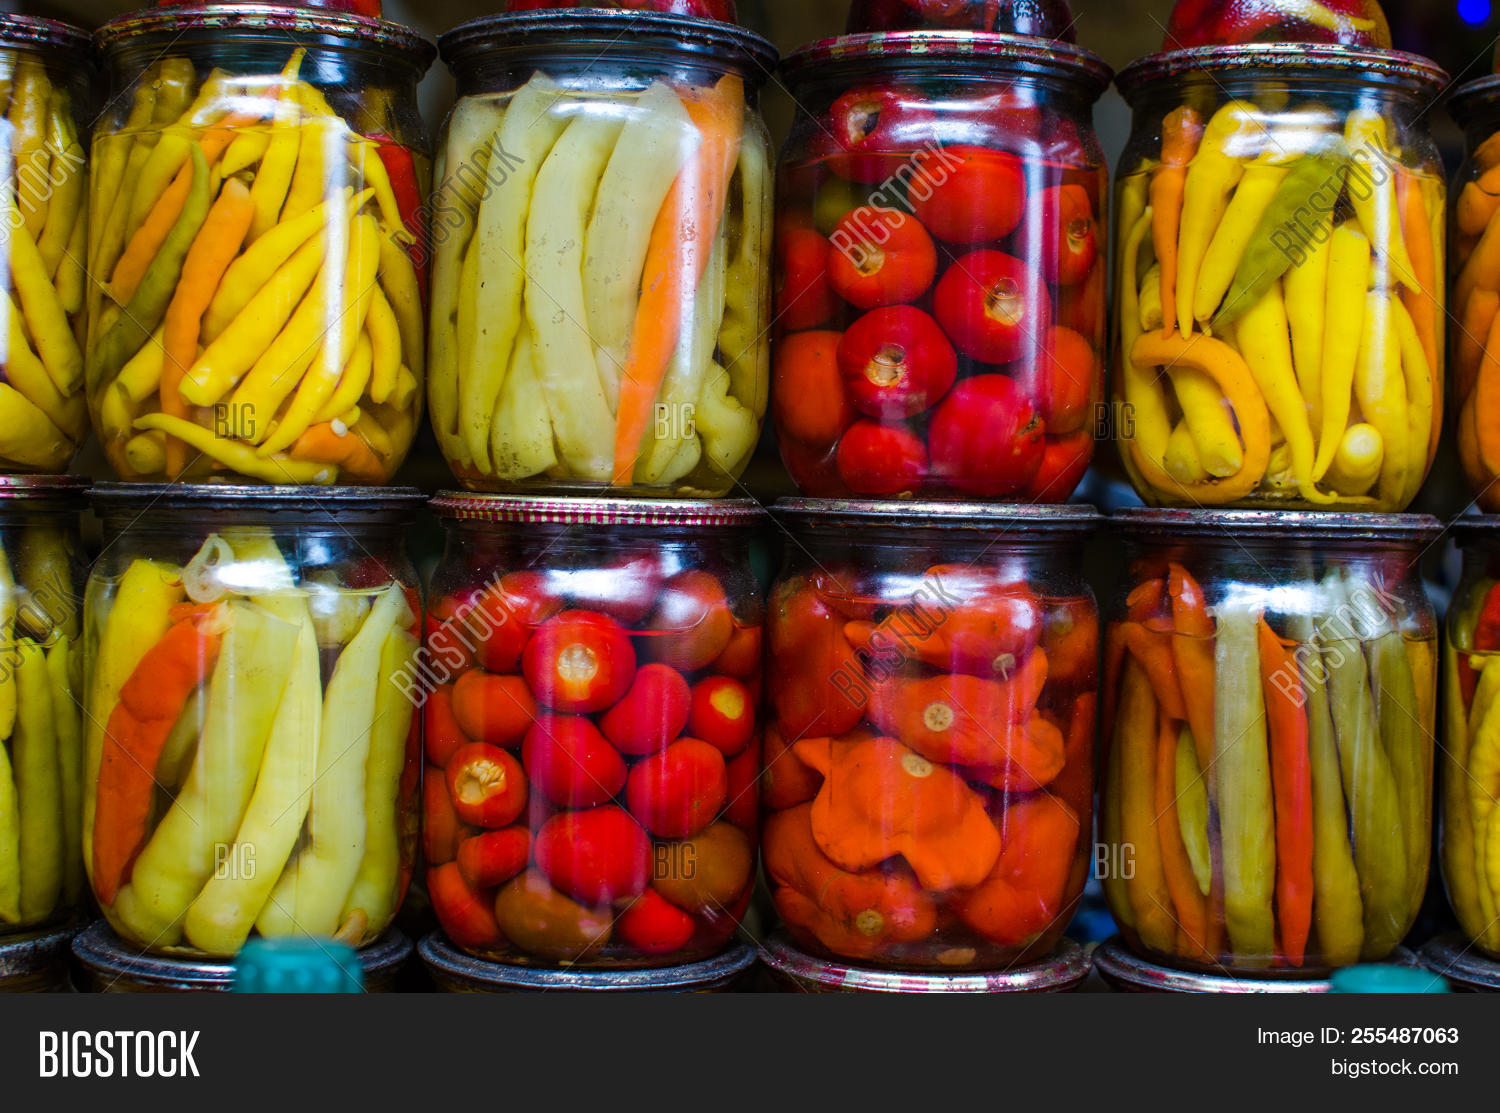 are canned vegetables good for you